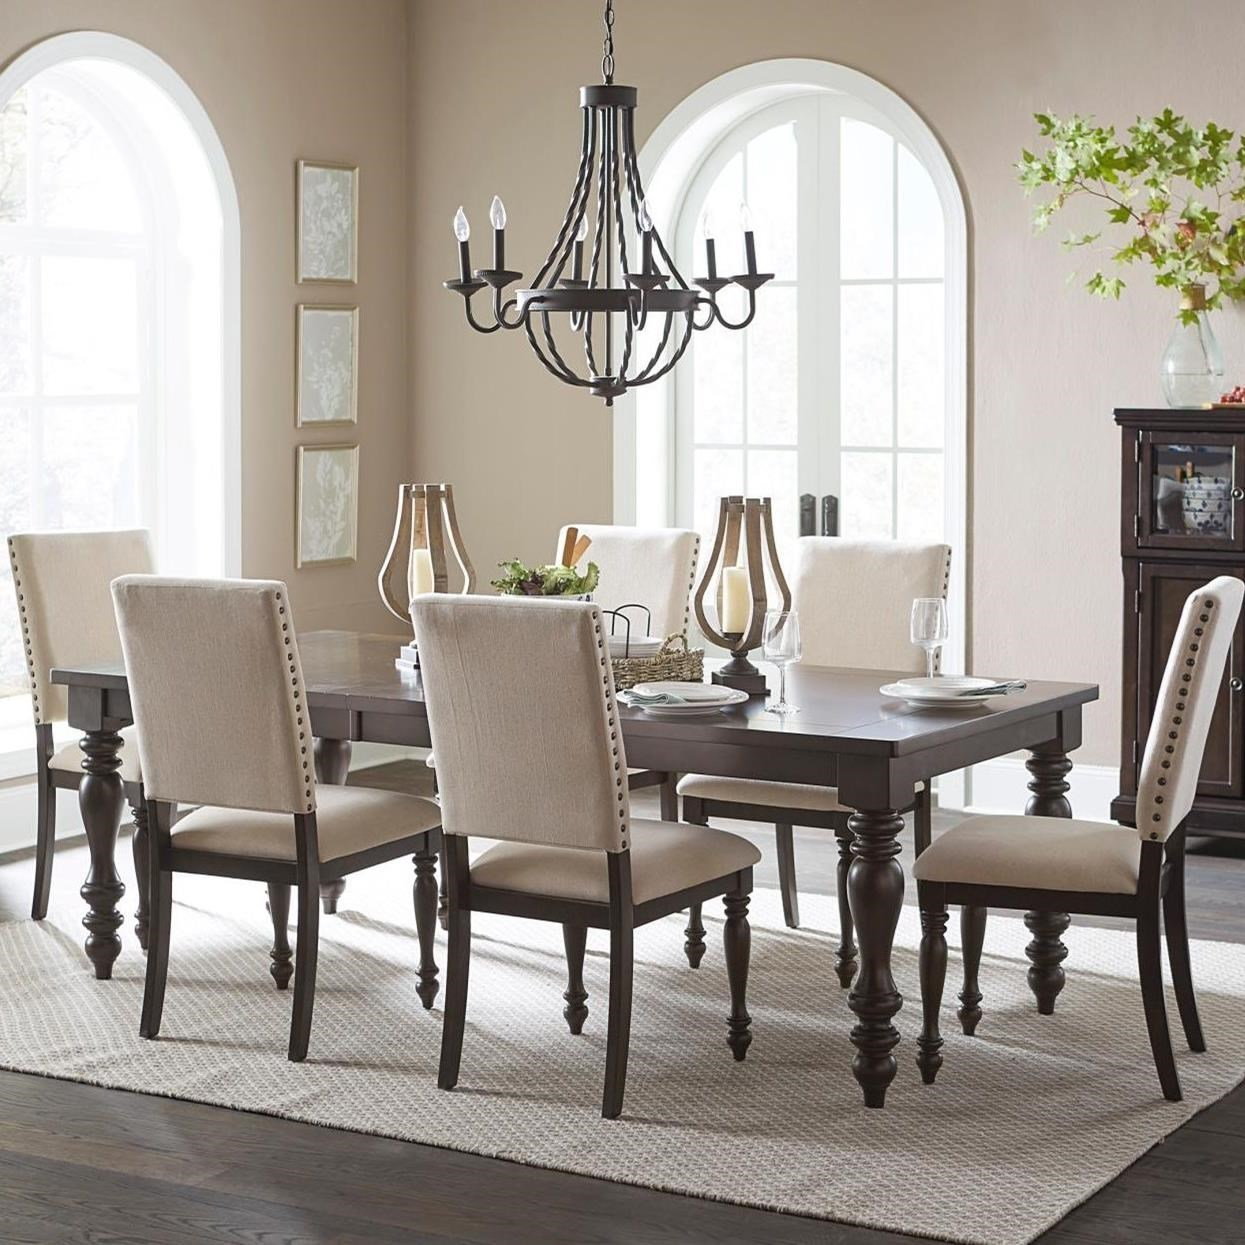 Homelegance Begonia7 Piece Dining Table Set